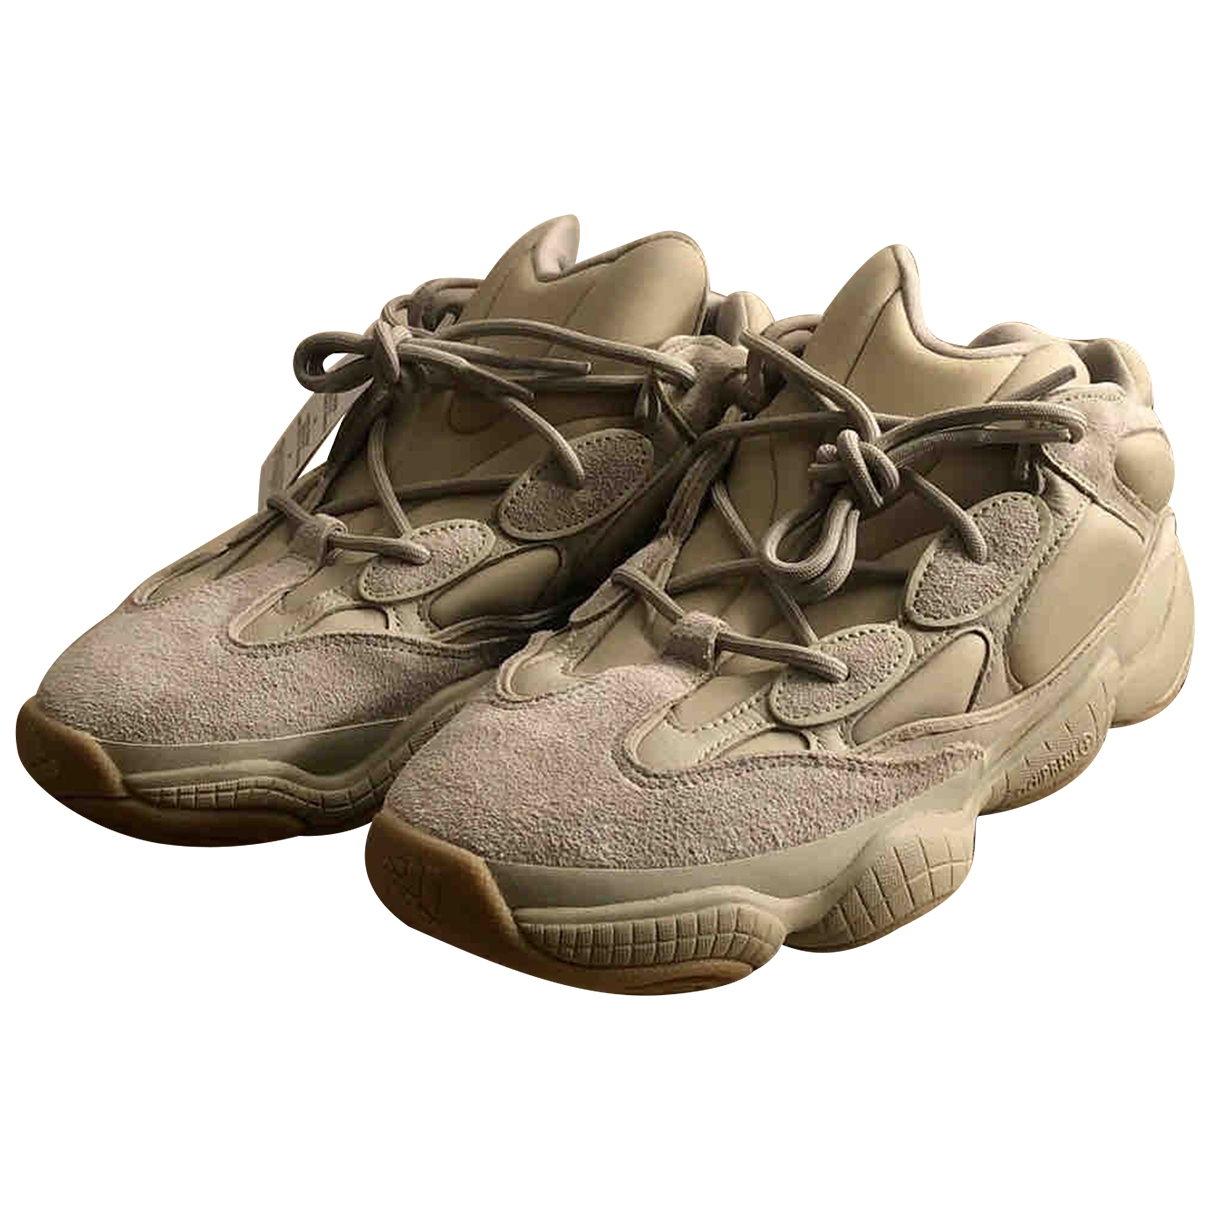 Yeezy X Adidas 500 Suede Trainers for Men 8 US